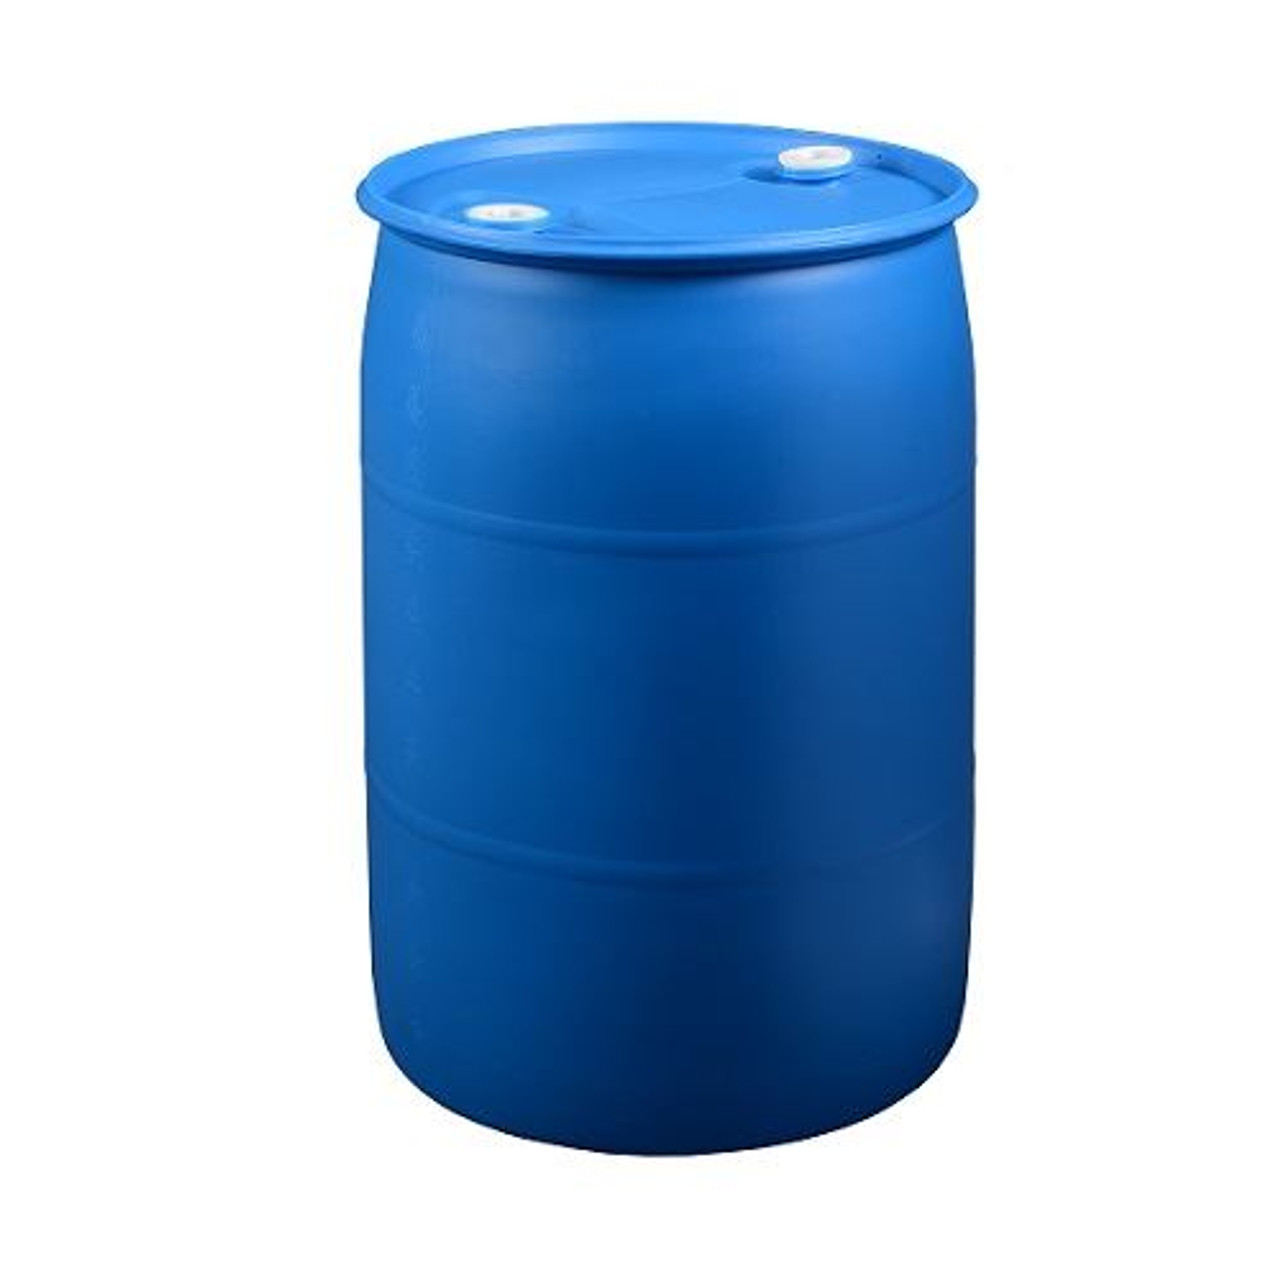 HDPE Plastic Closed Head UN Rated Drums | Berlin Packaging